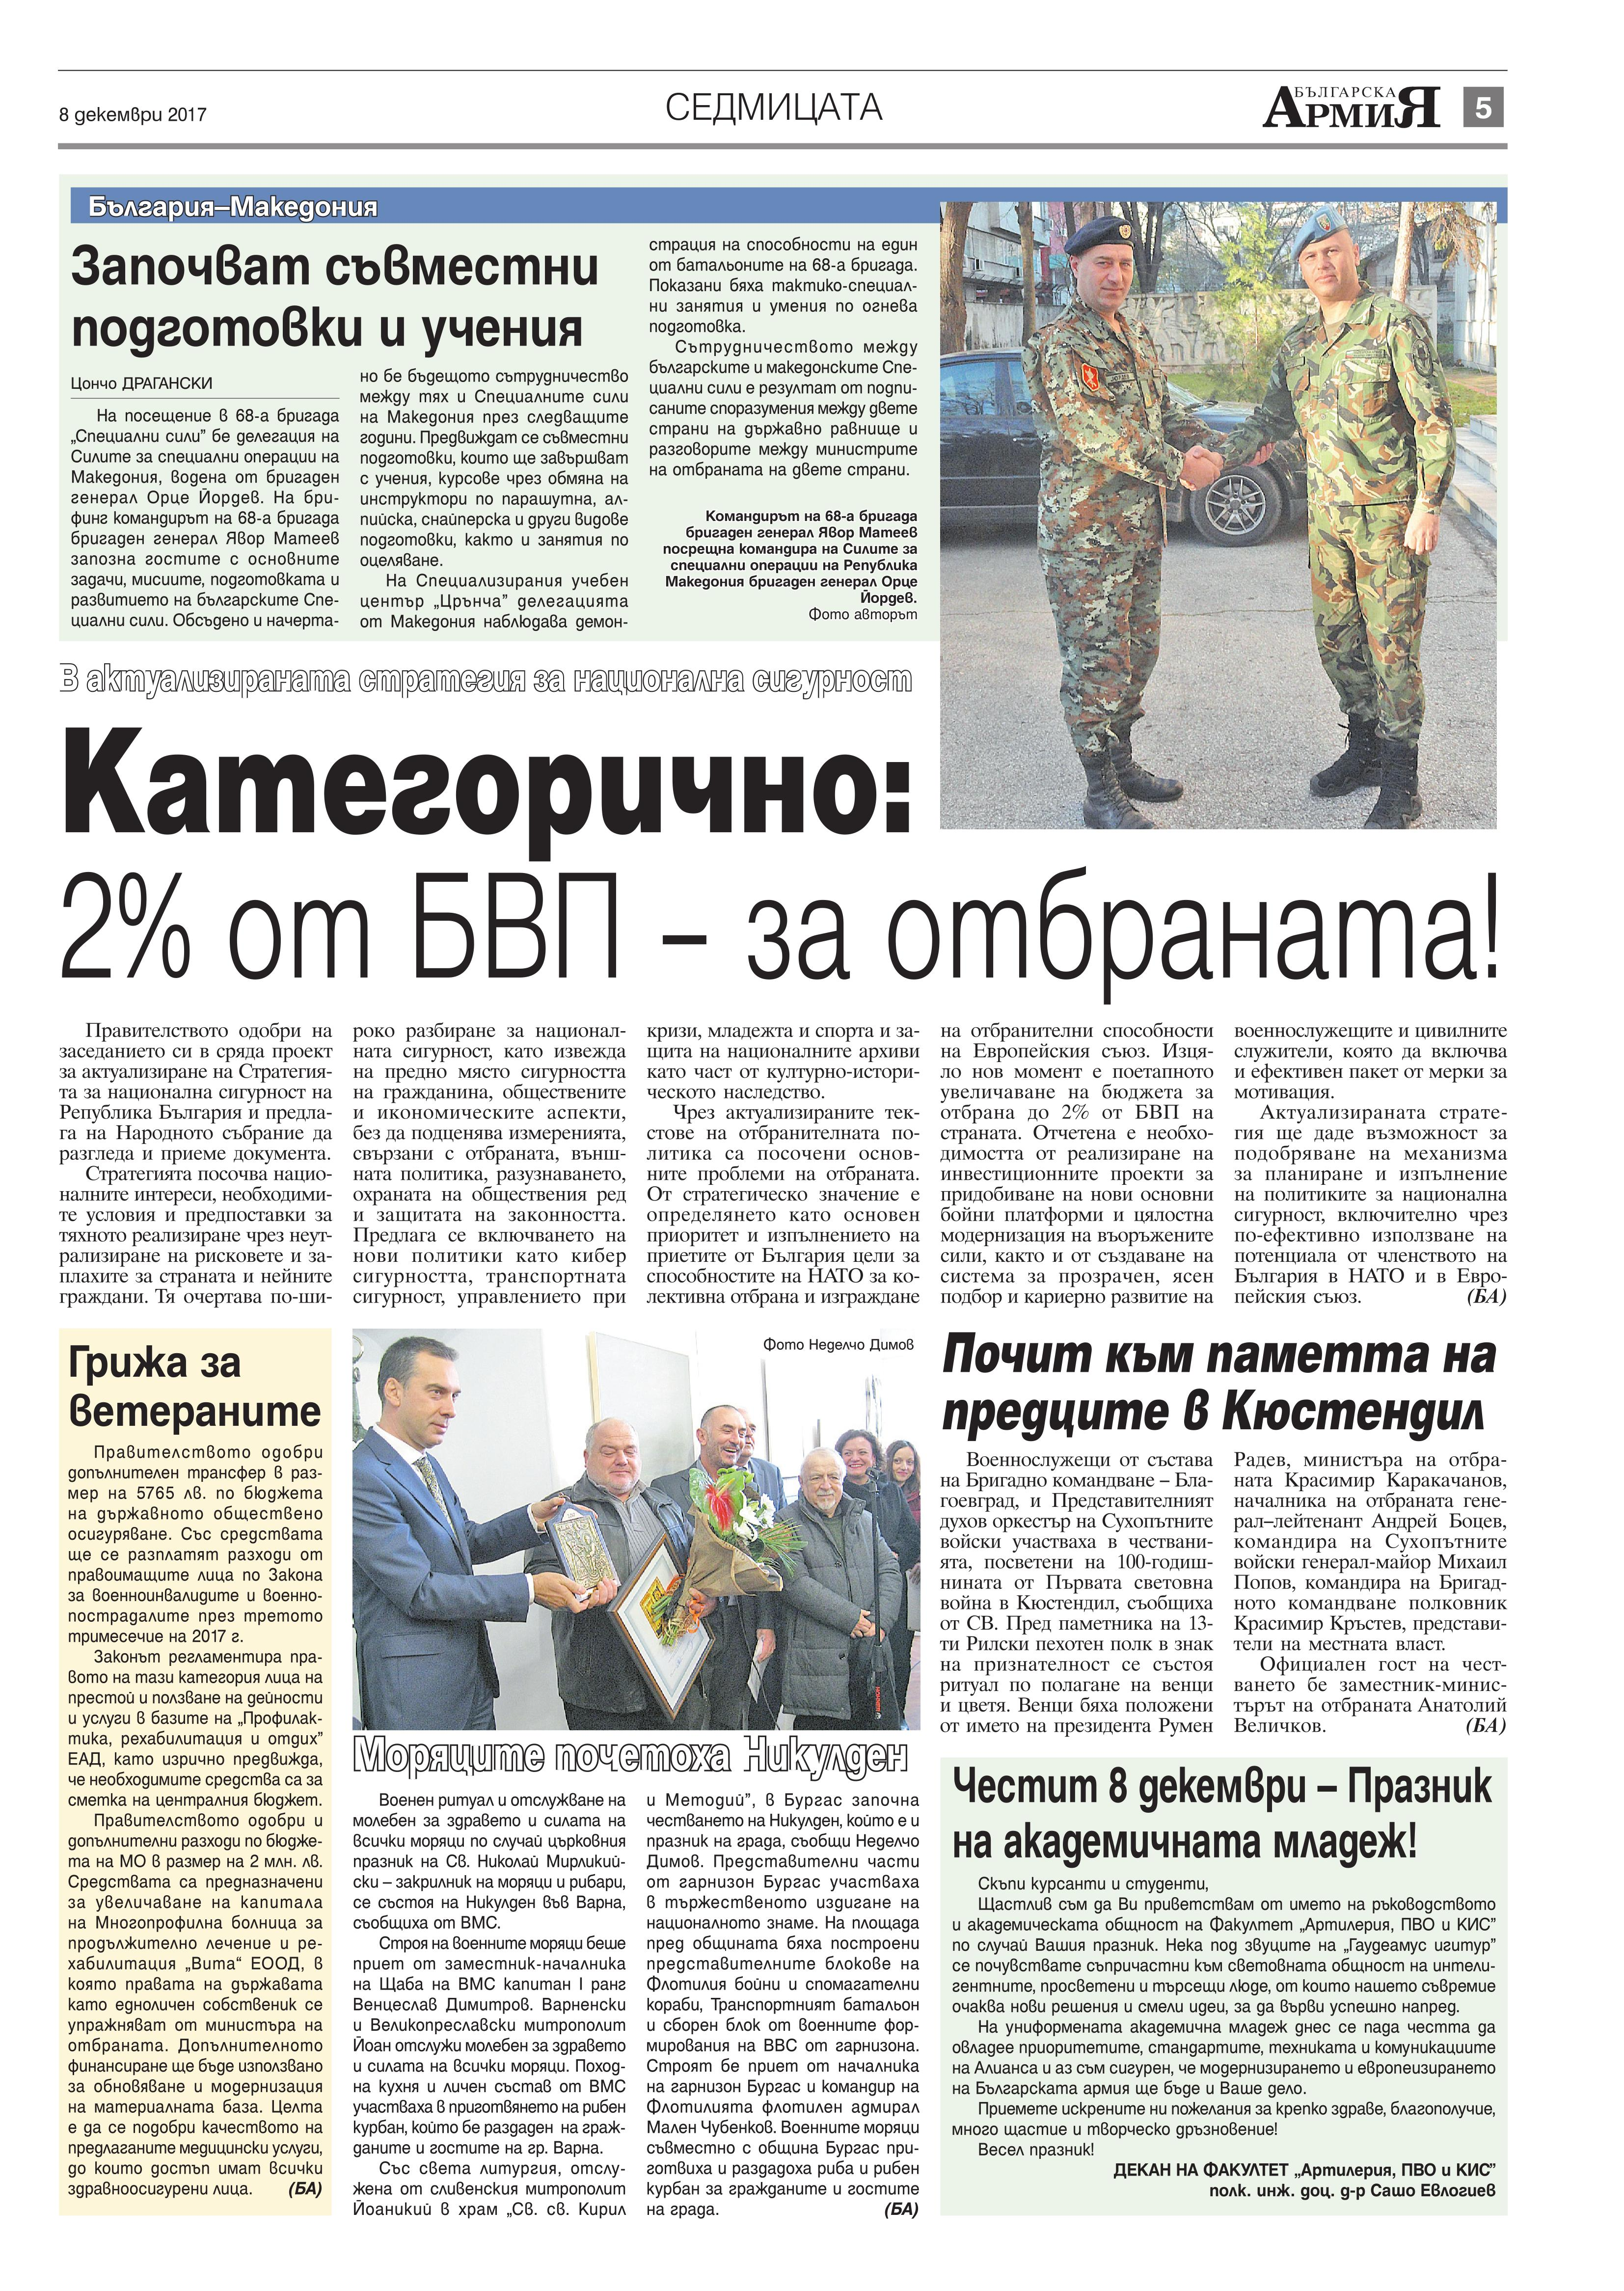 https://armymedia.bg/wp-content/uploads/2015/06/05.page1_-33.jpg